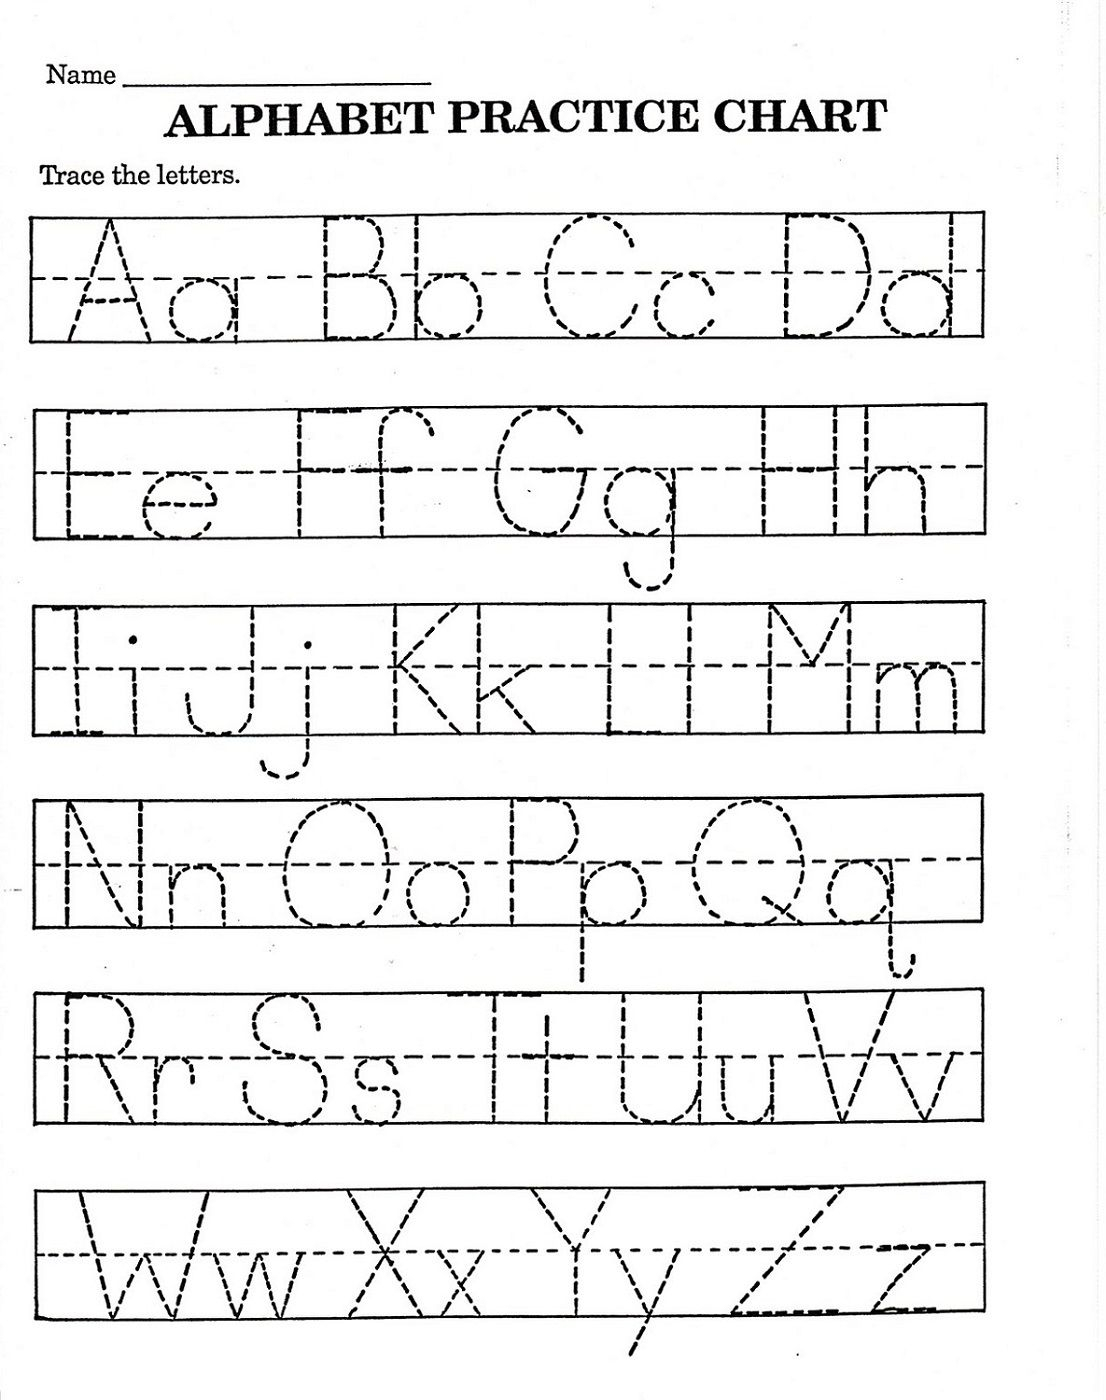 Trace Letter Worksheets Free | Alphabet Tracing Worksheets regarding Preschool Tracing Letters Worksheets Free